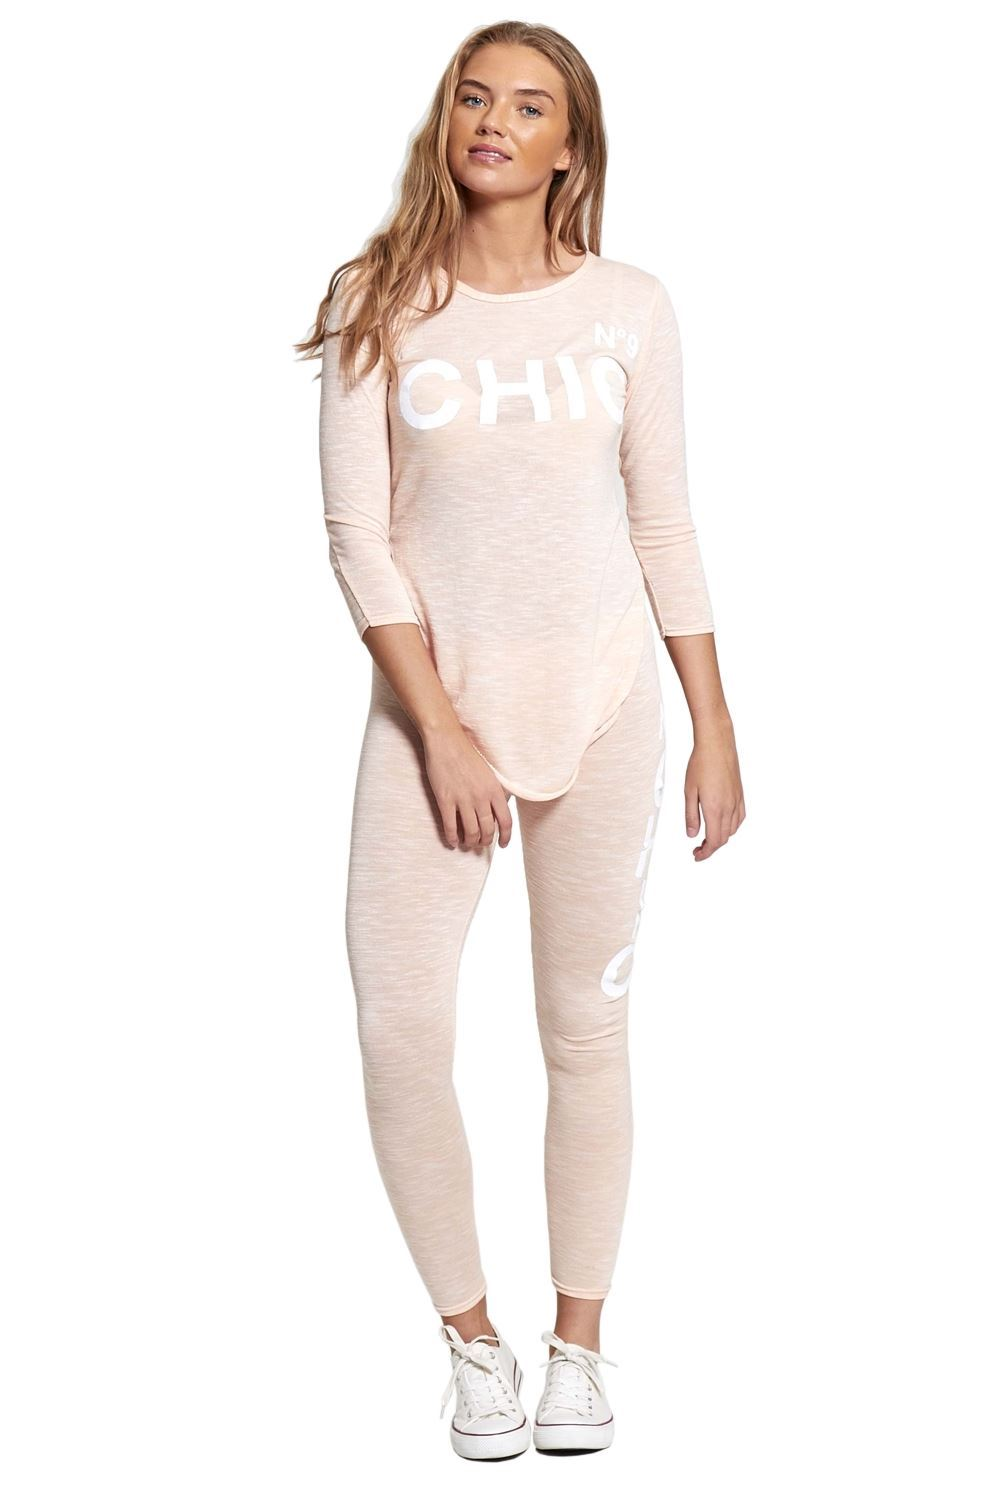 HEM AND BOW S-L LADIES NEW CASUAL BEIGE TRACKSUIT MARL WITH BLACK CHIFFON BACK